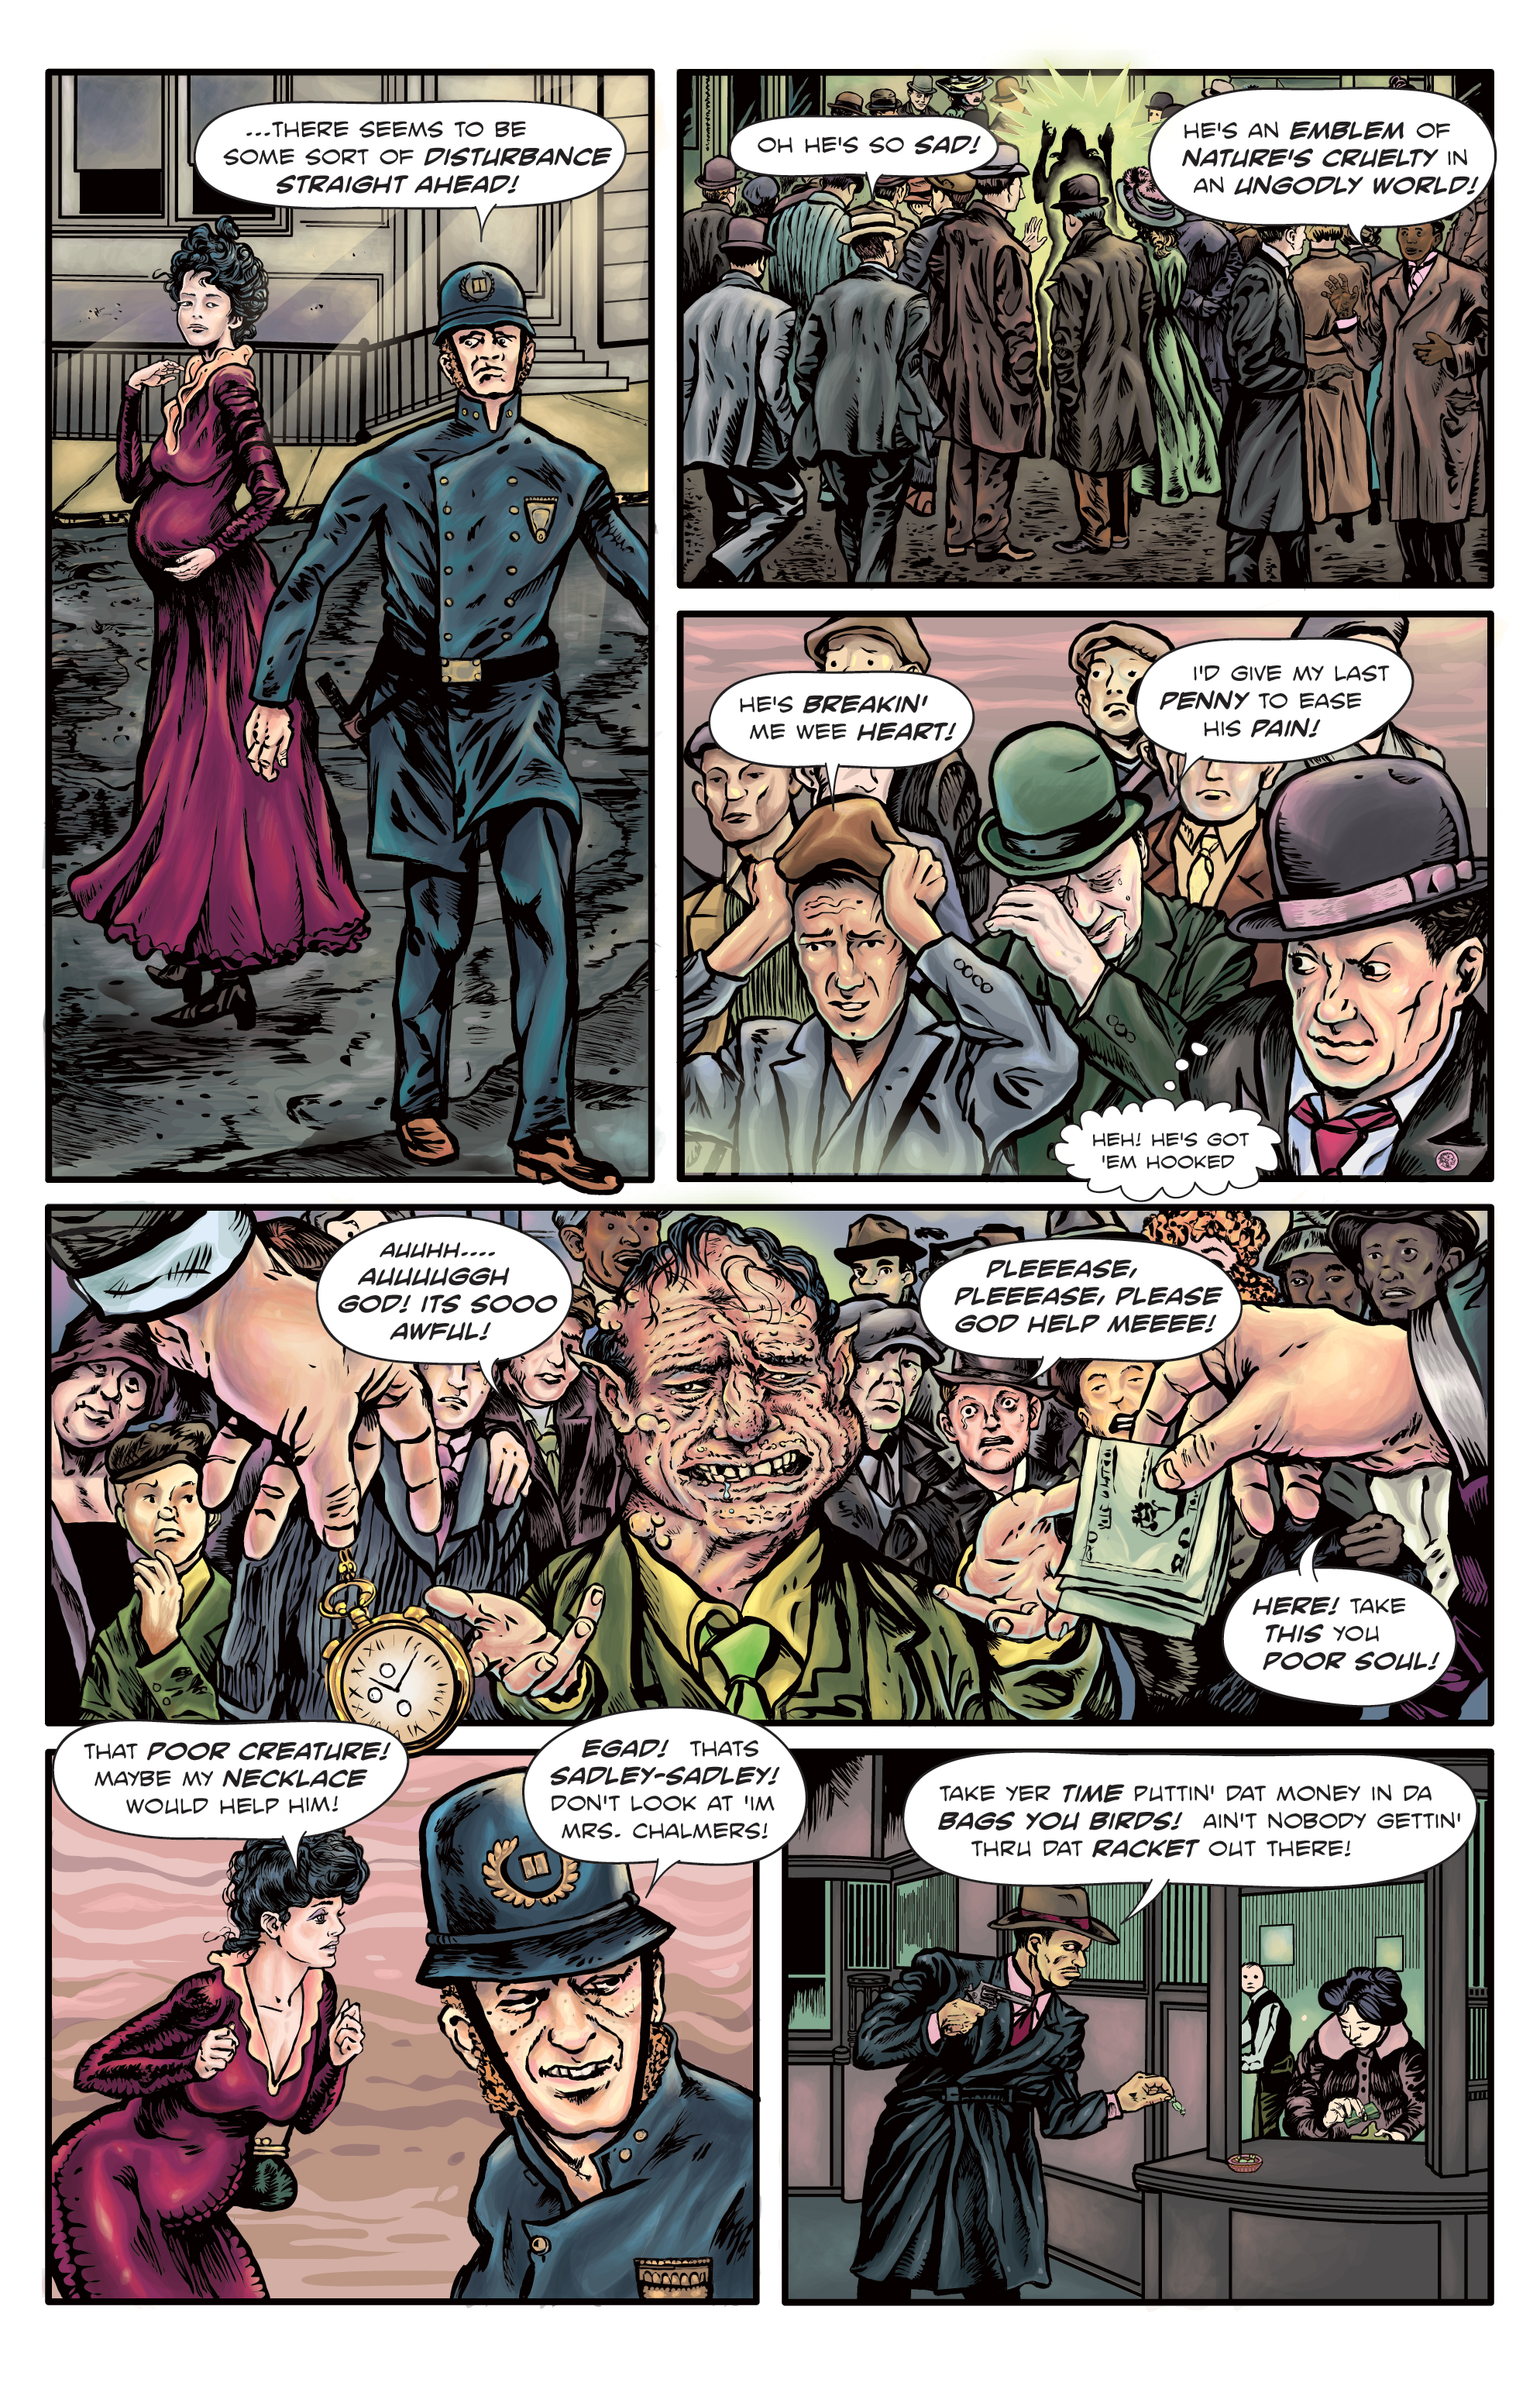 The Enchanted Dagger # 4 – Page 2